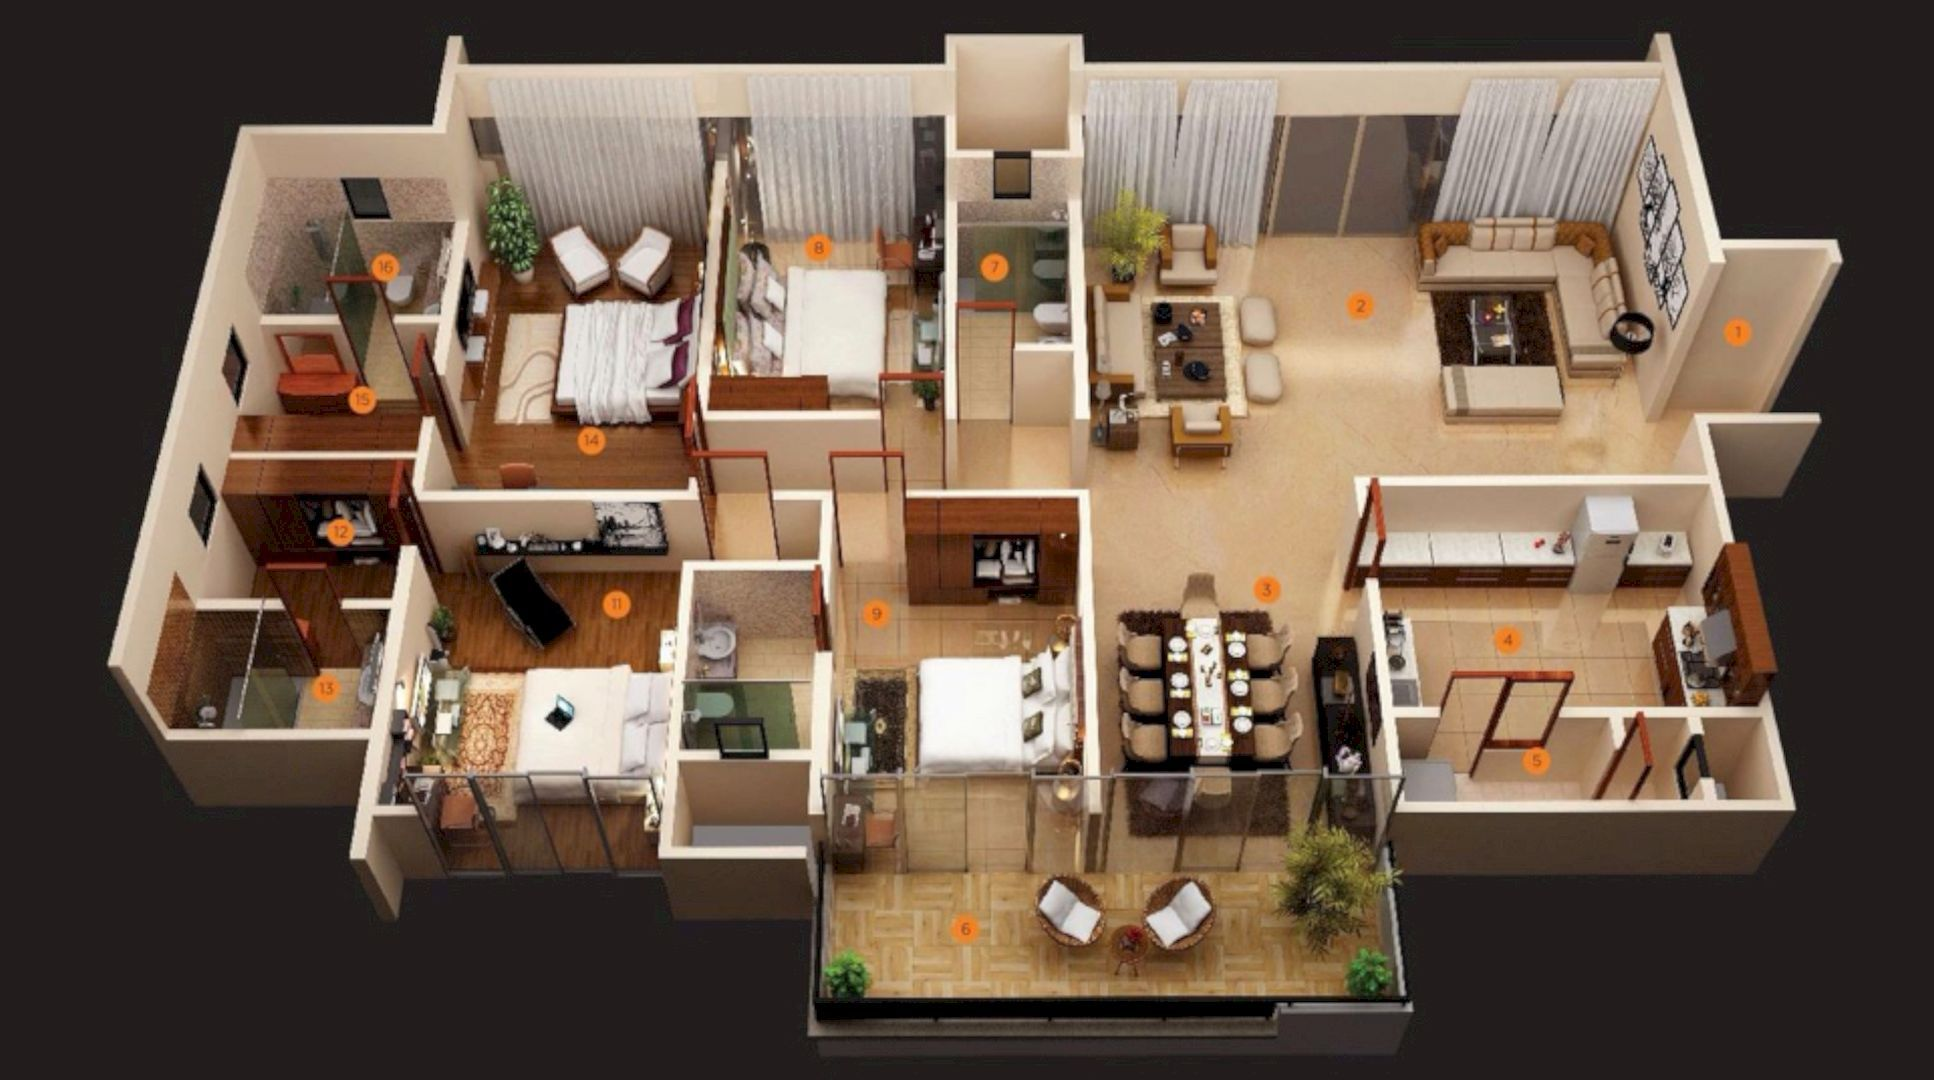 Why Do We Need 3d House Plan Before Starting The Project 4 Bedroom House Designs Four Bedroom House Plans 3d House Plans